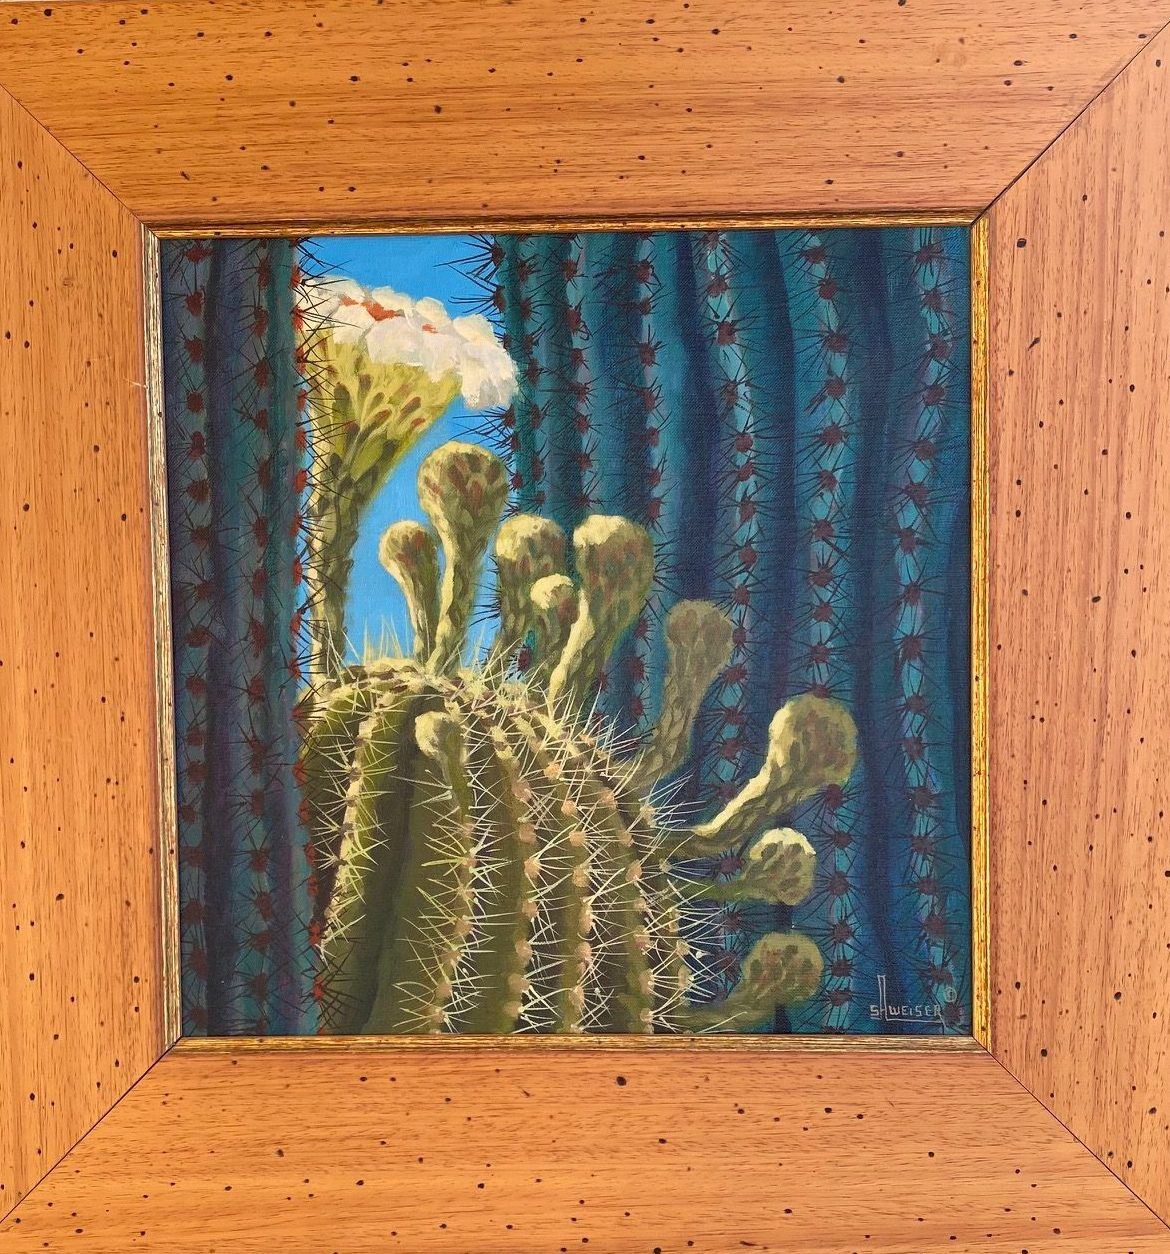 Cactus Blossoms, Sharon Weiser, Rogoway Gallery